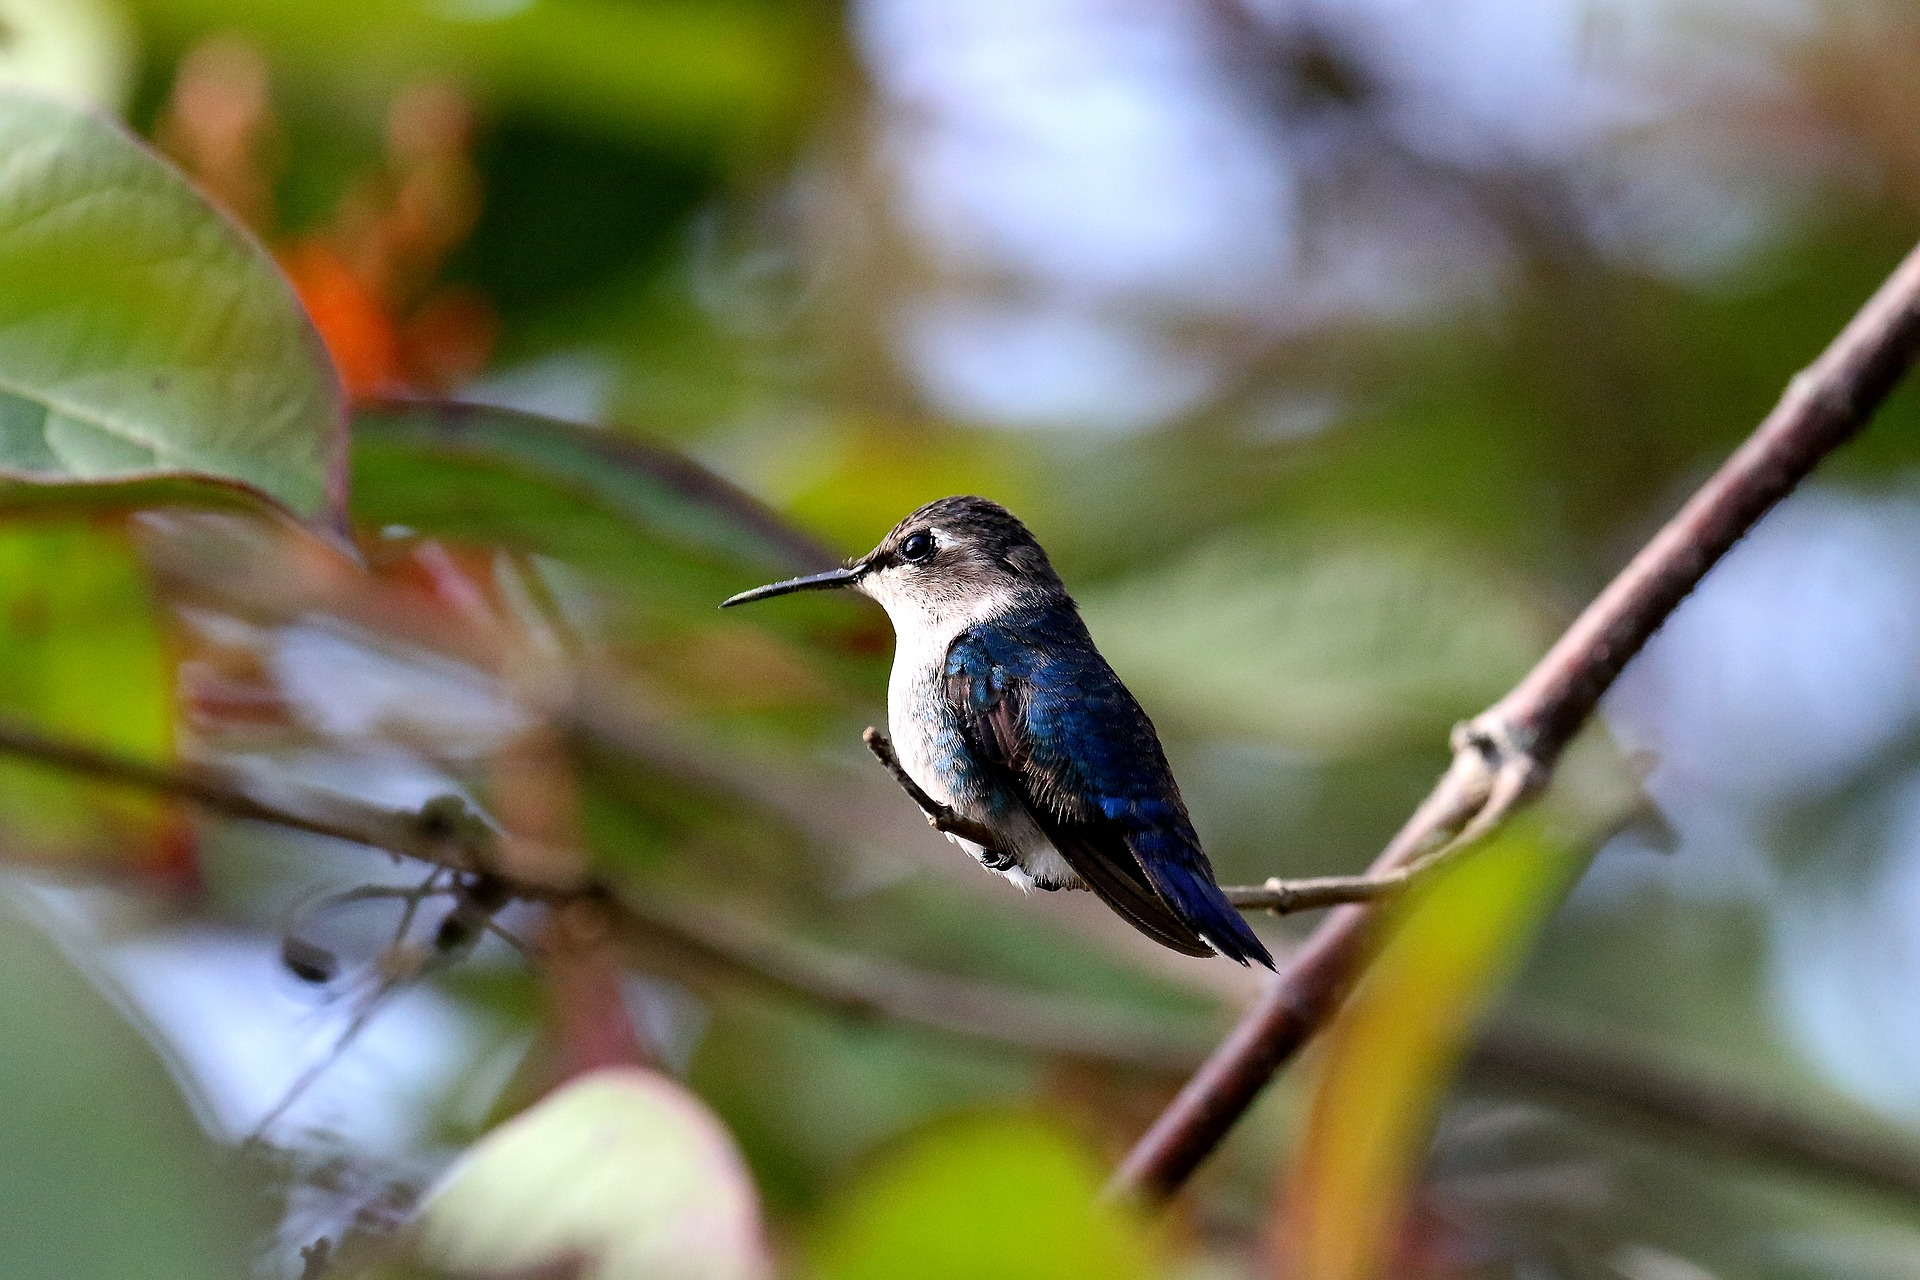 Cuba is home to the smallest bird in the world | Facts about Cuba